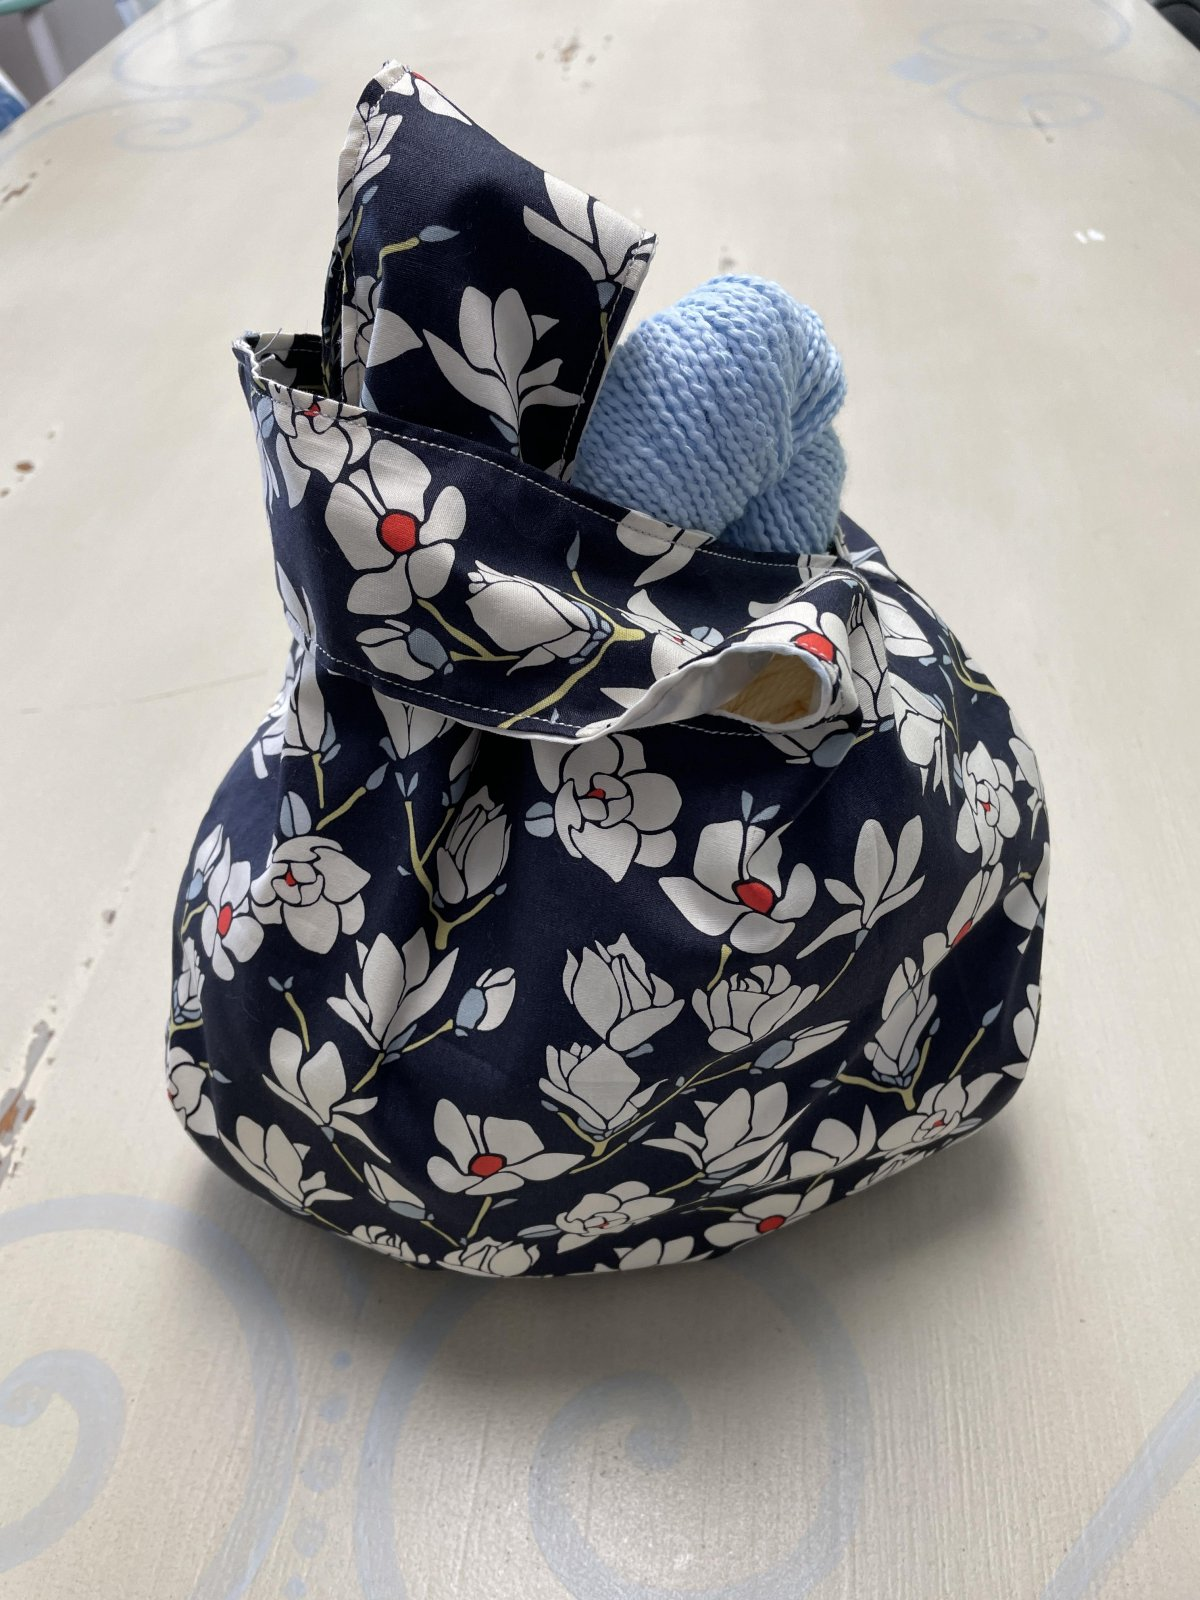 Project Knot Bag